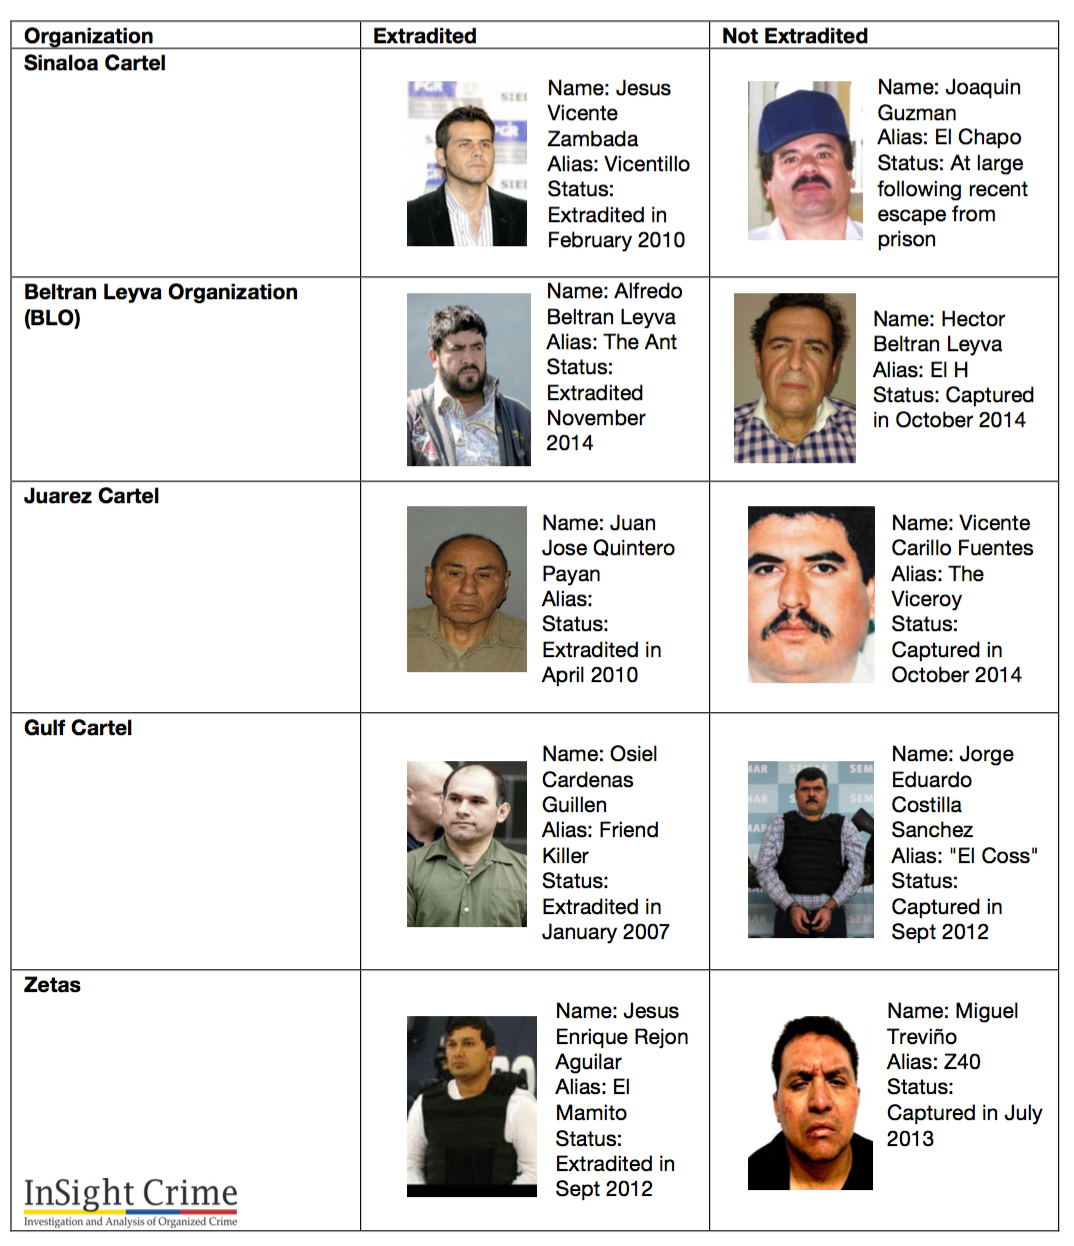 15-07-13-mexico-extradition-chart